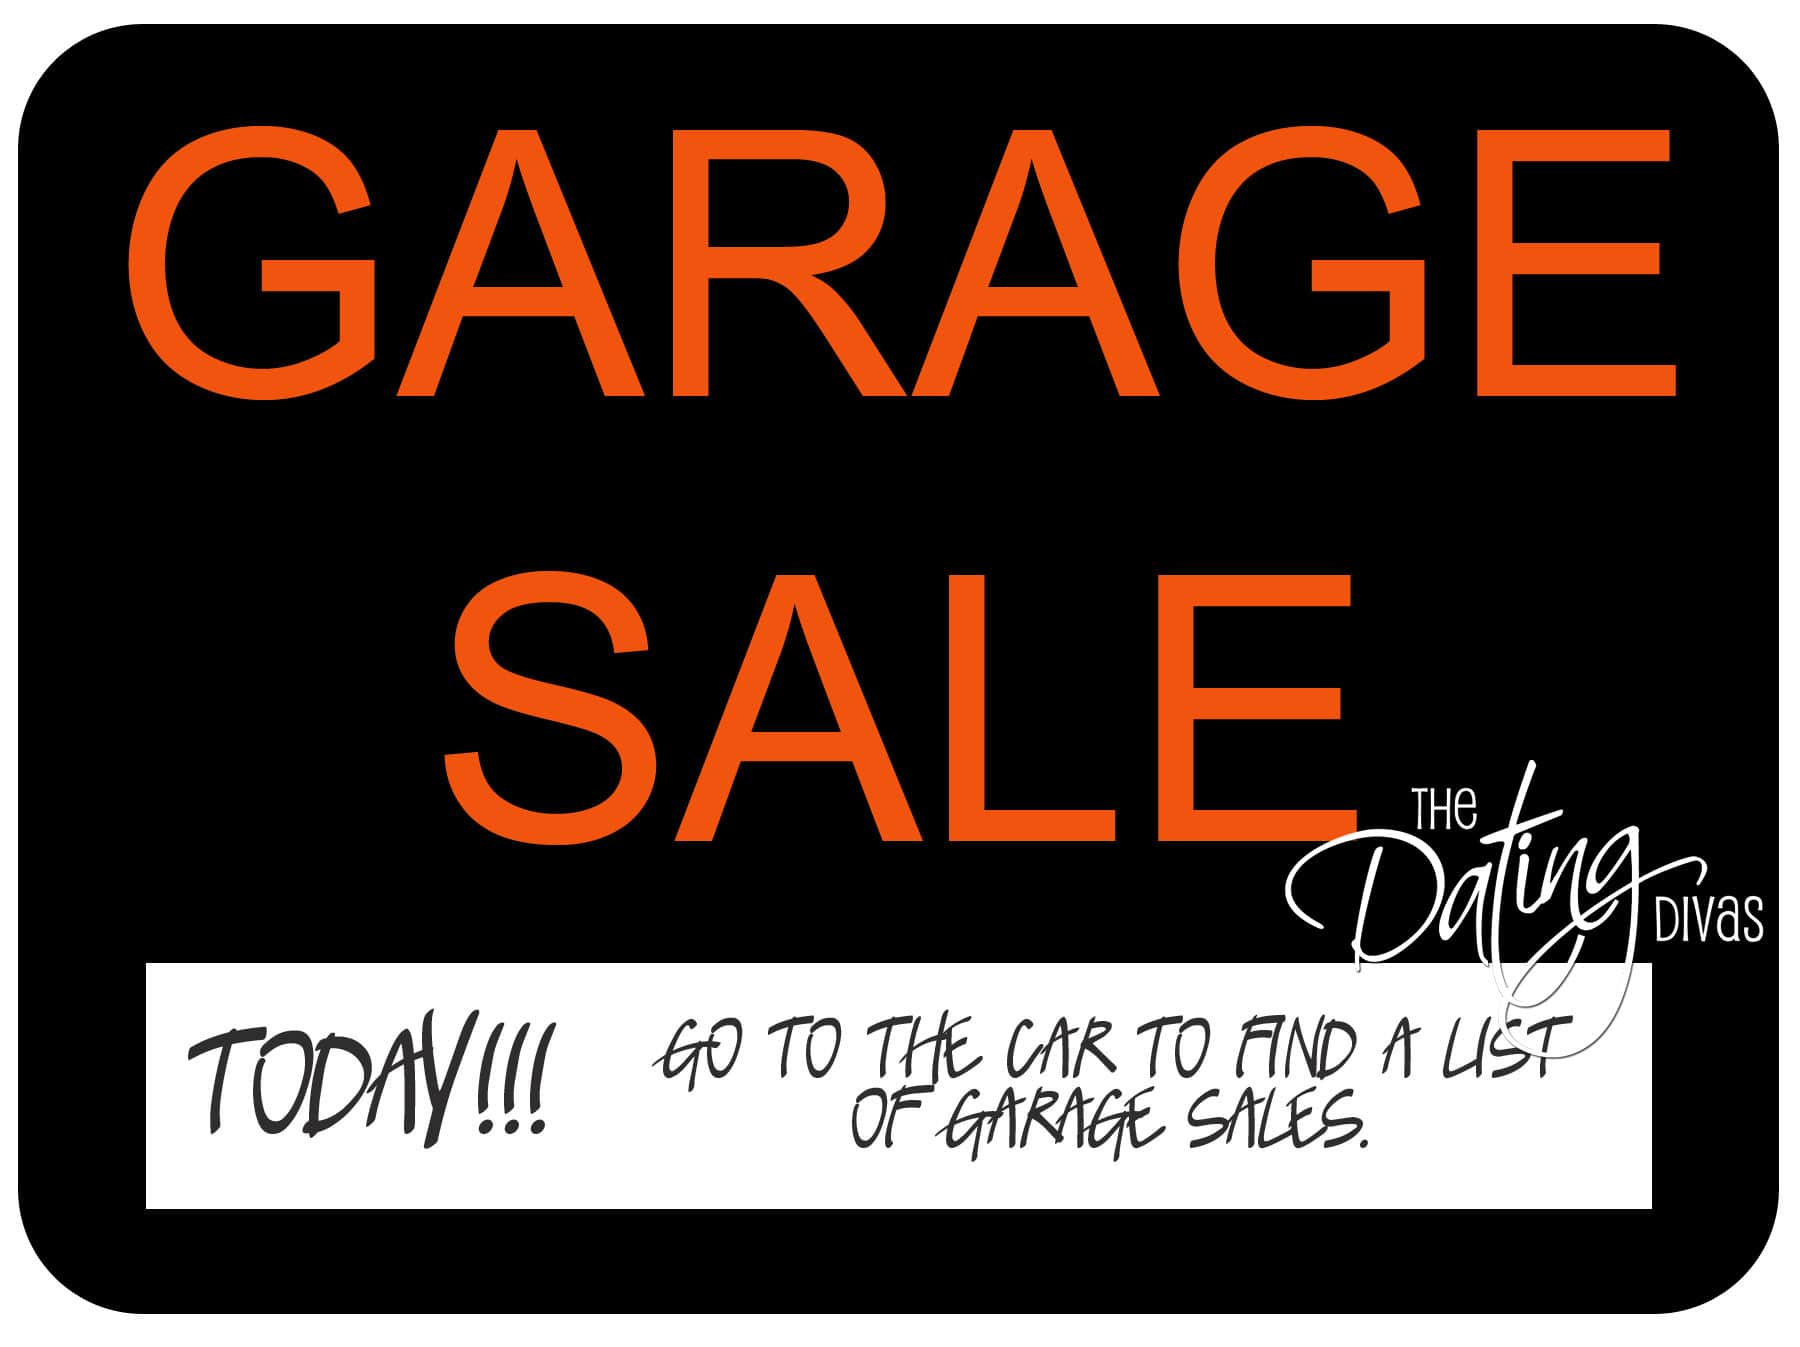 Garage Sale Scavenger Hunt Date Idea - A Creative Date